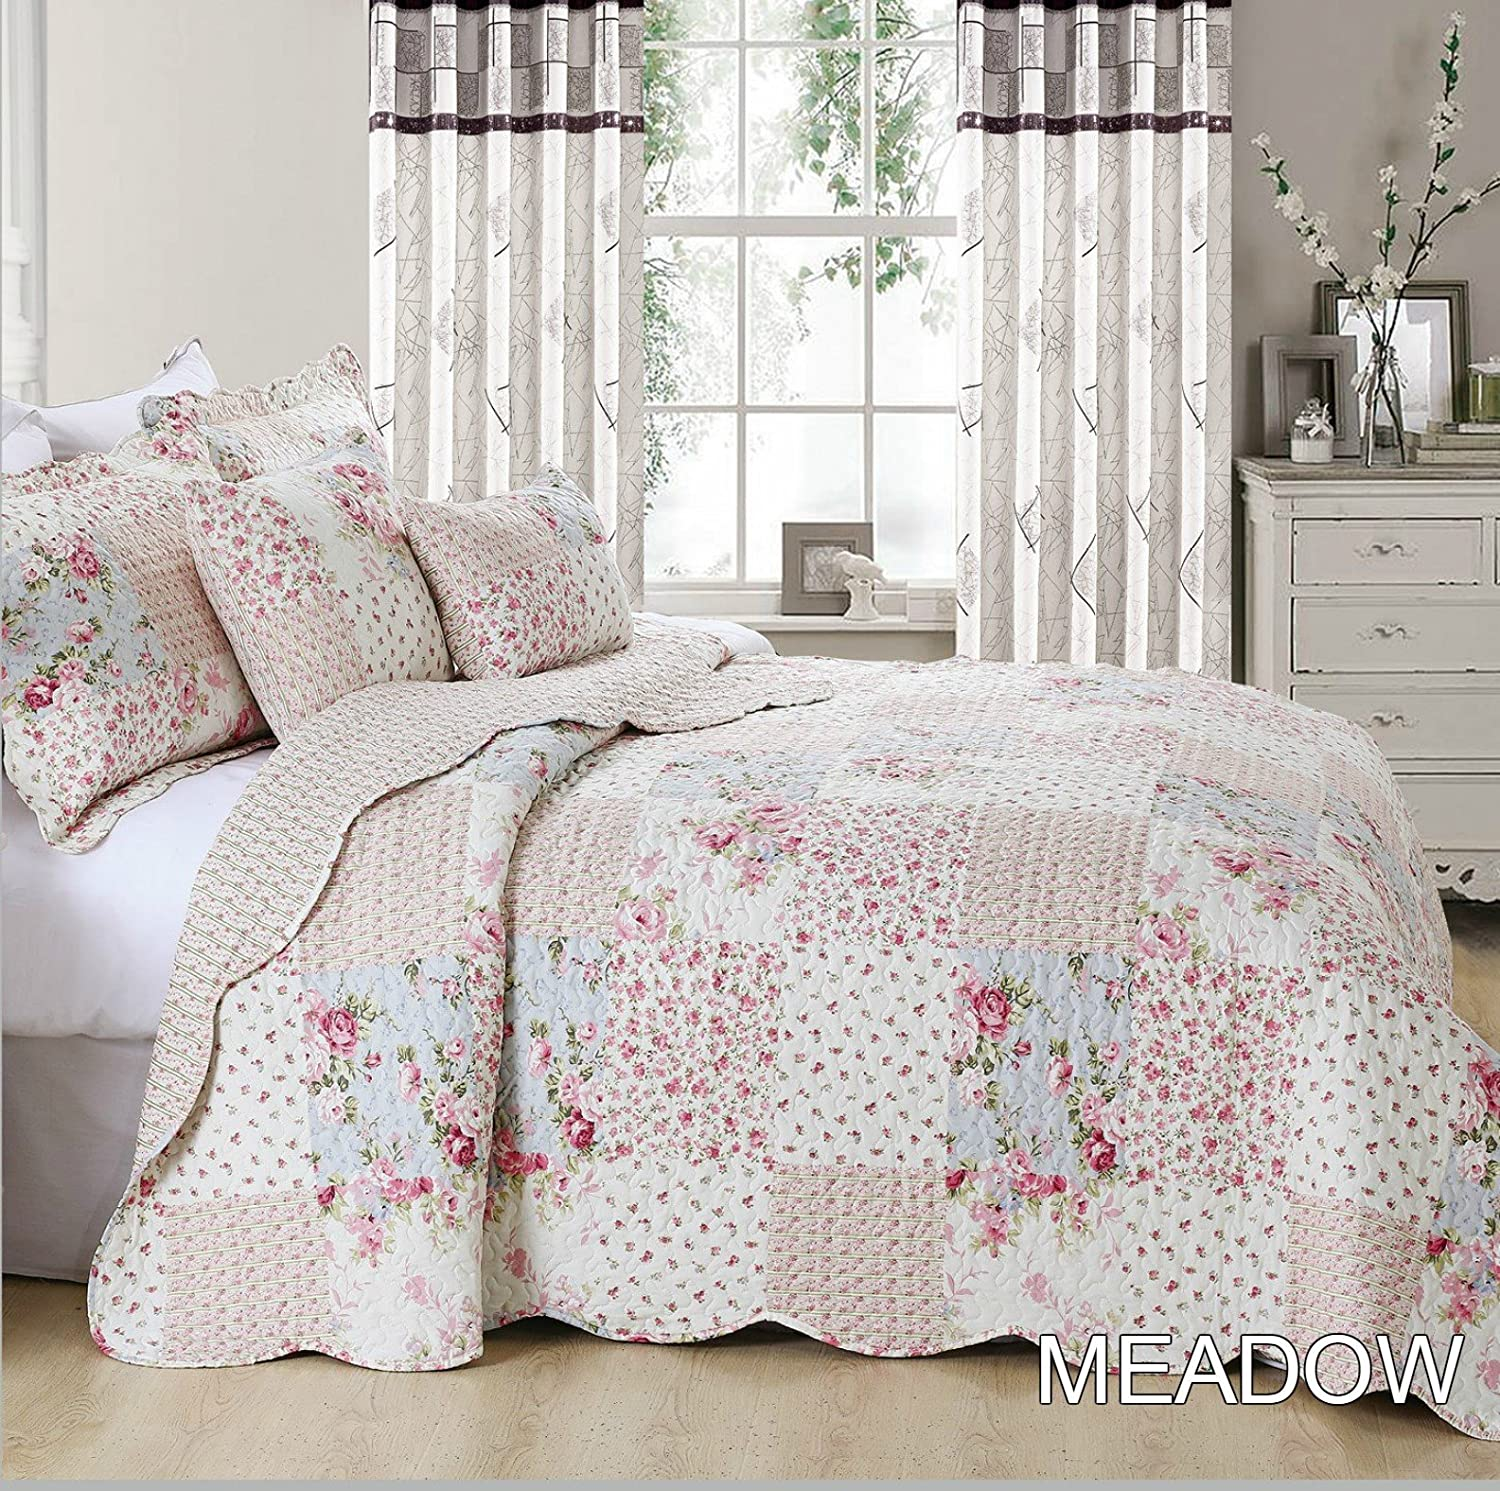 Alicia Bedspread Comforter Quilted Bed Throw 3 Pieces Vintage Printed Patchwork (Alicia, Double) PL